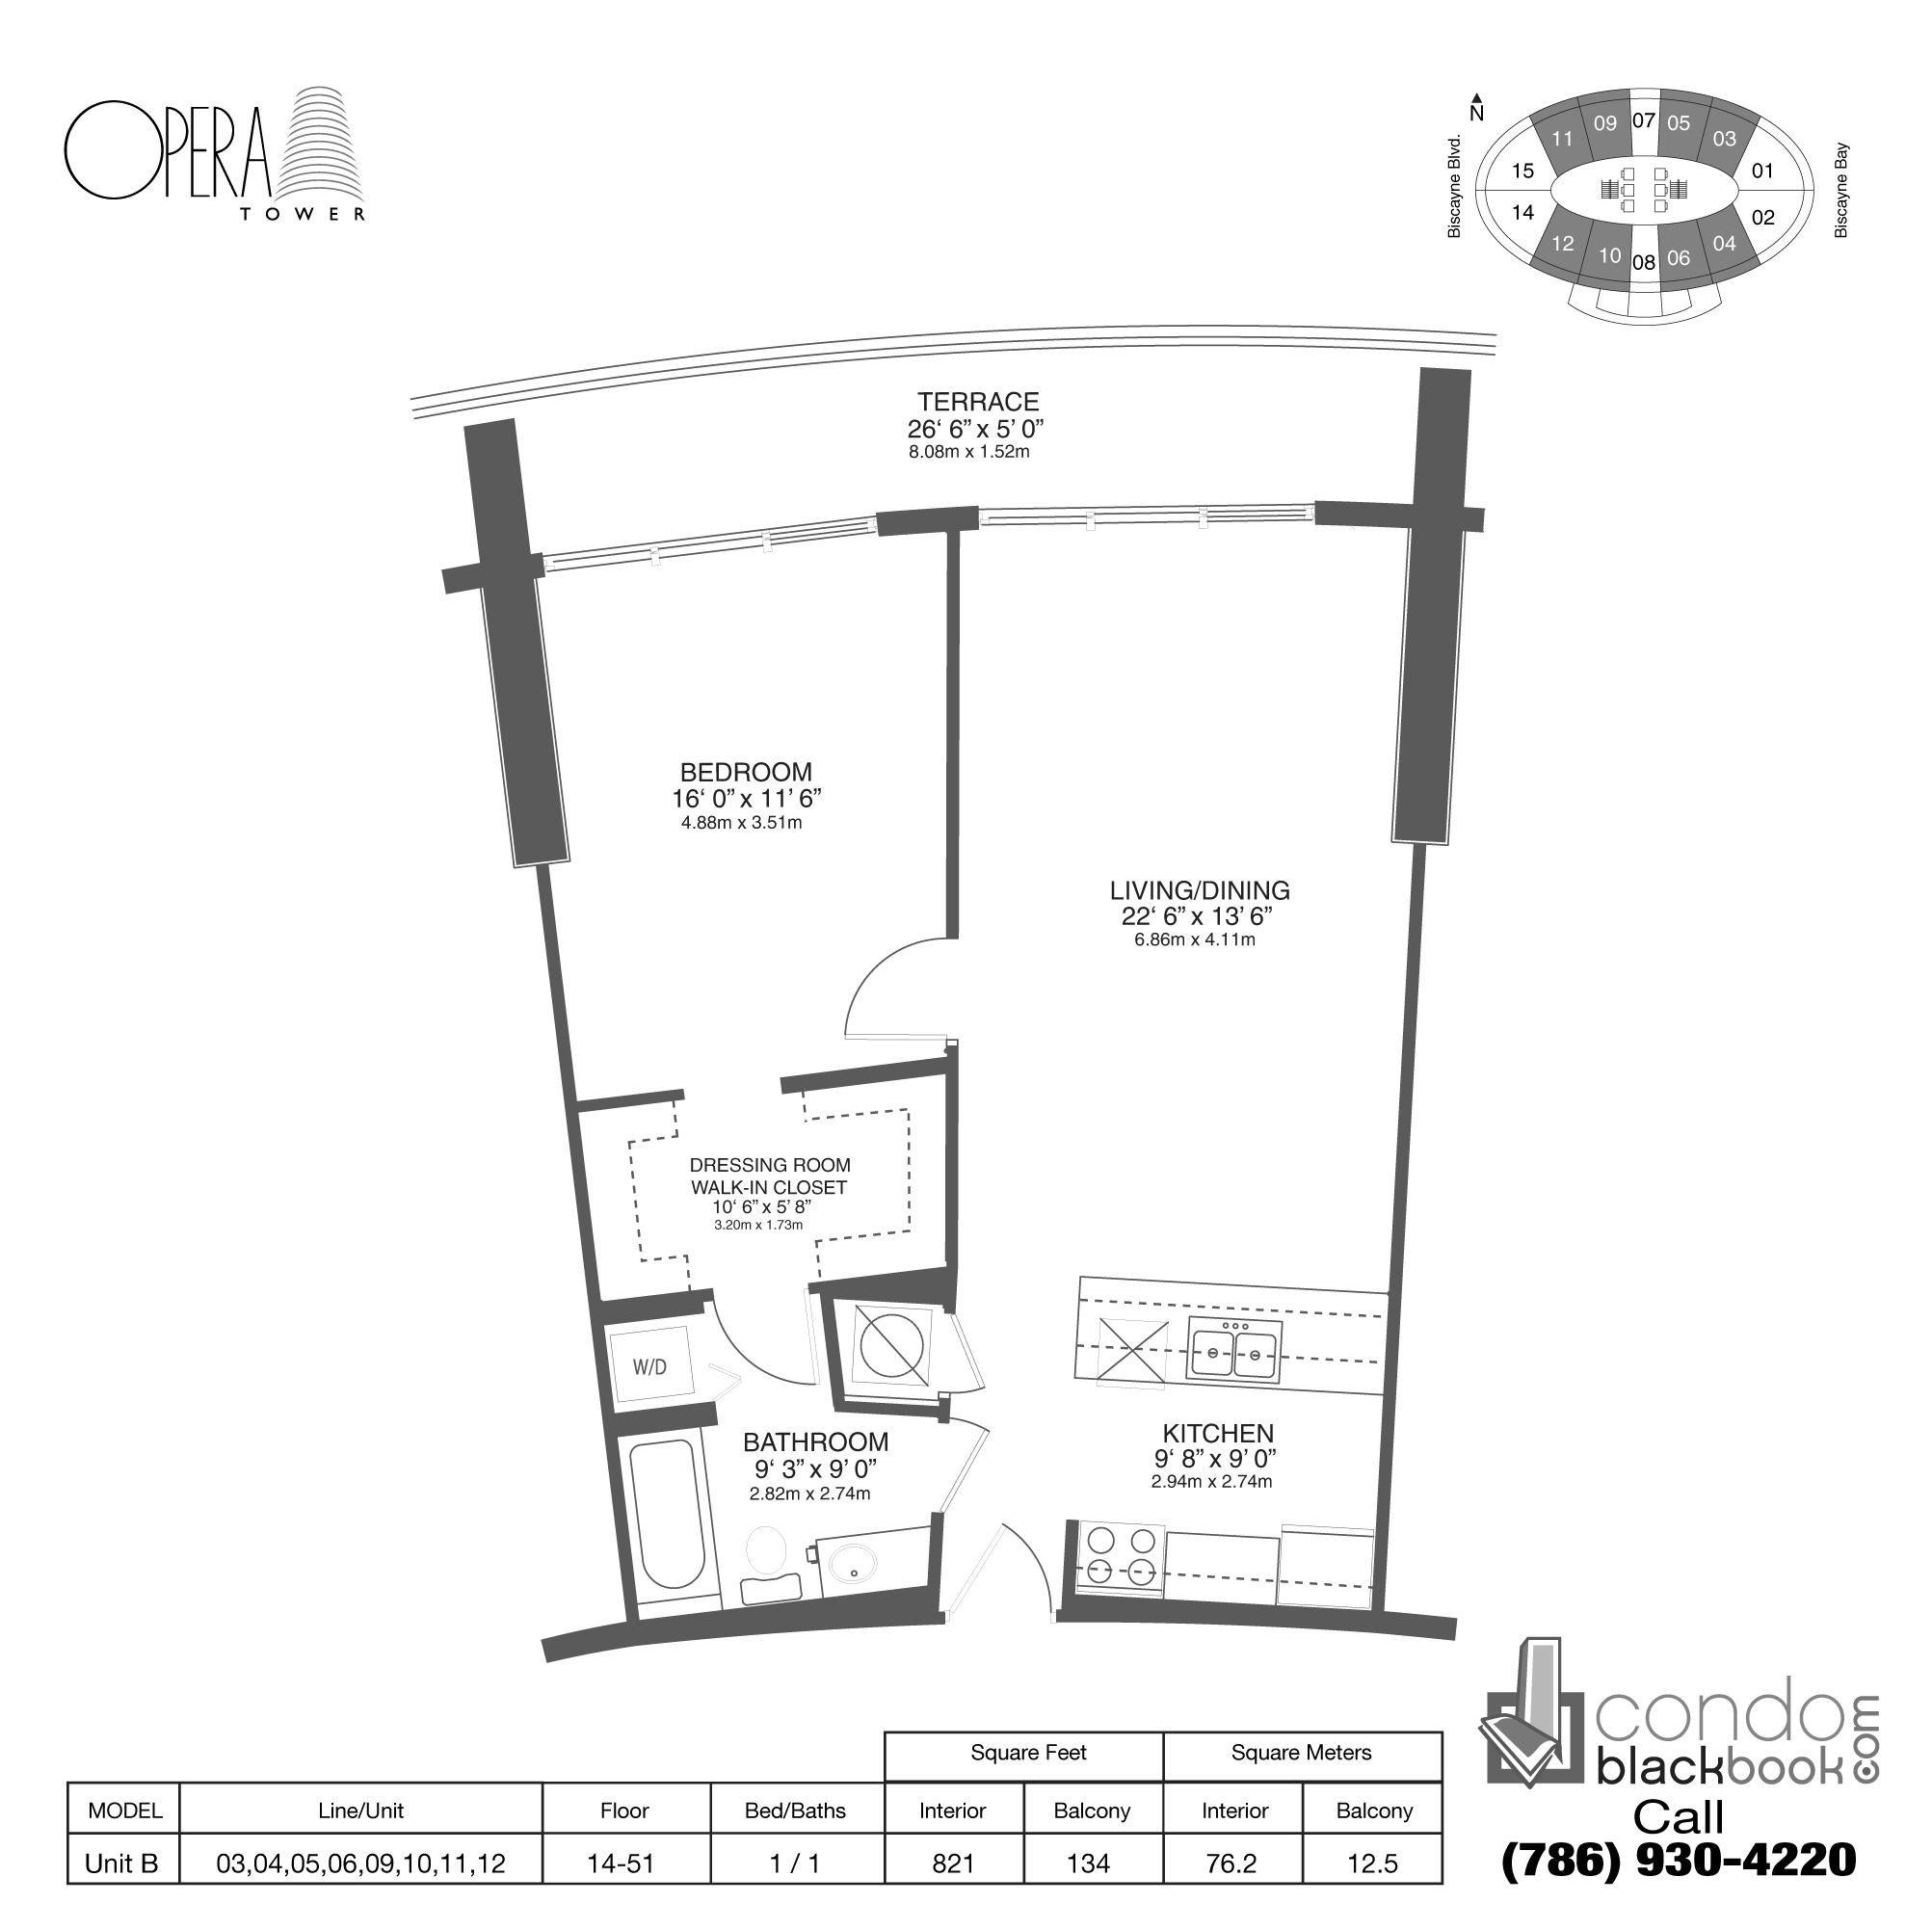 Floor plan for Opera Tower Edgewater Miami, model Unit B, line 04, 1 / 1 bedrooms, 821 sq ft